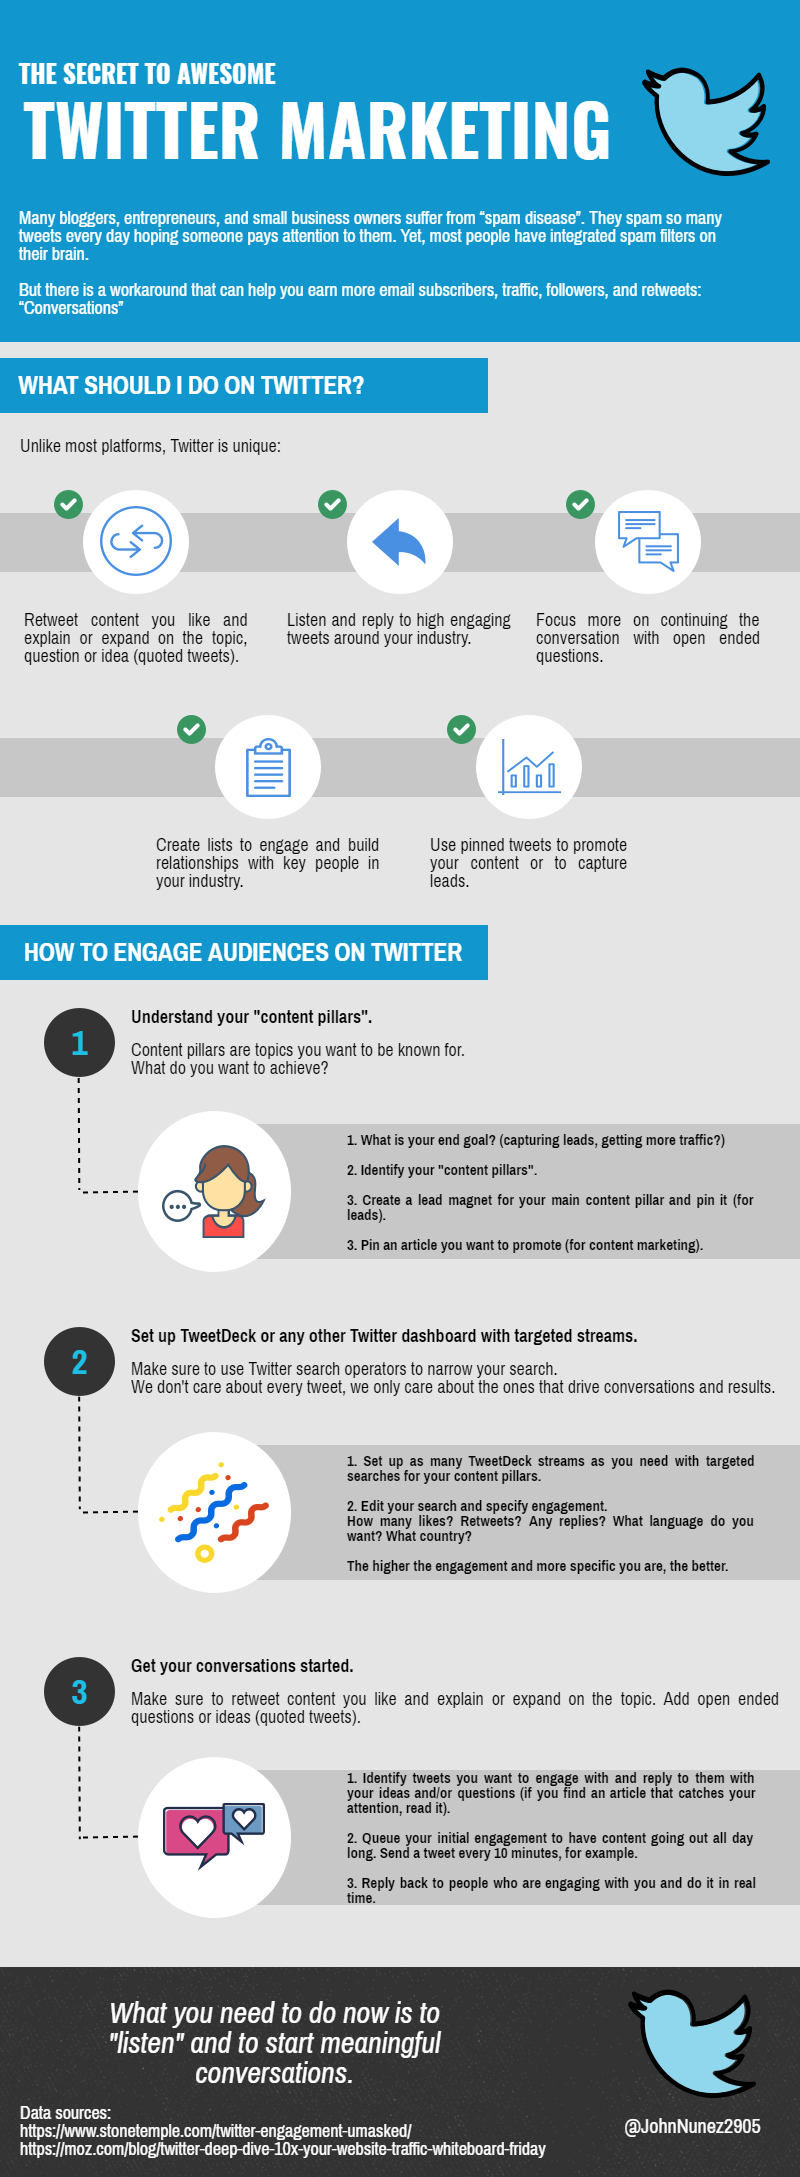 The Secret To Awesome Twitter Marketing